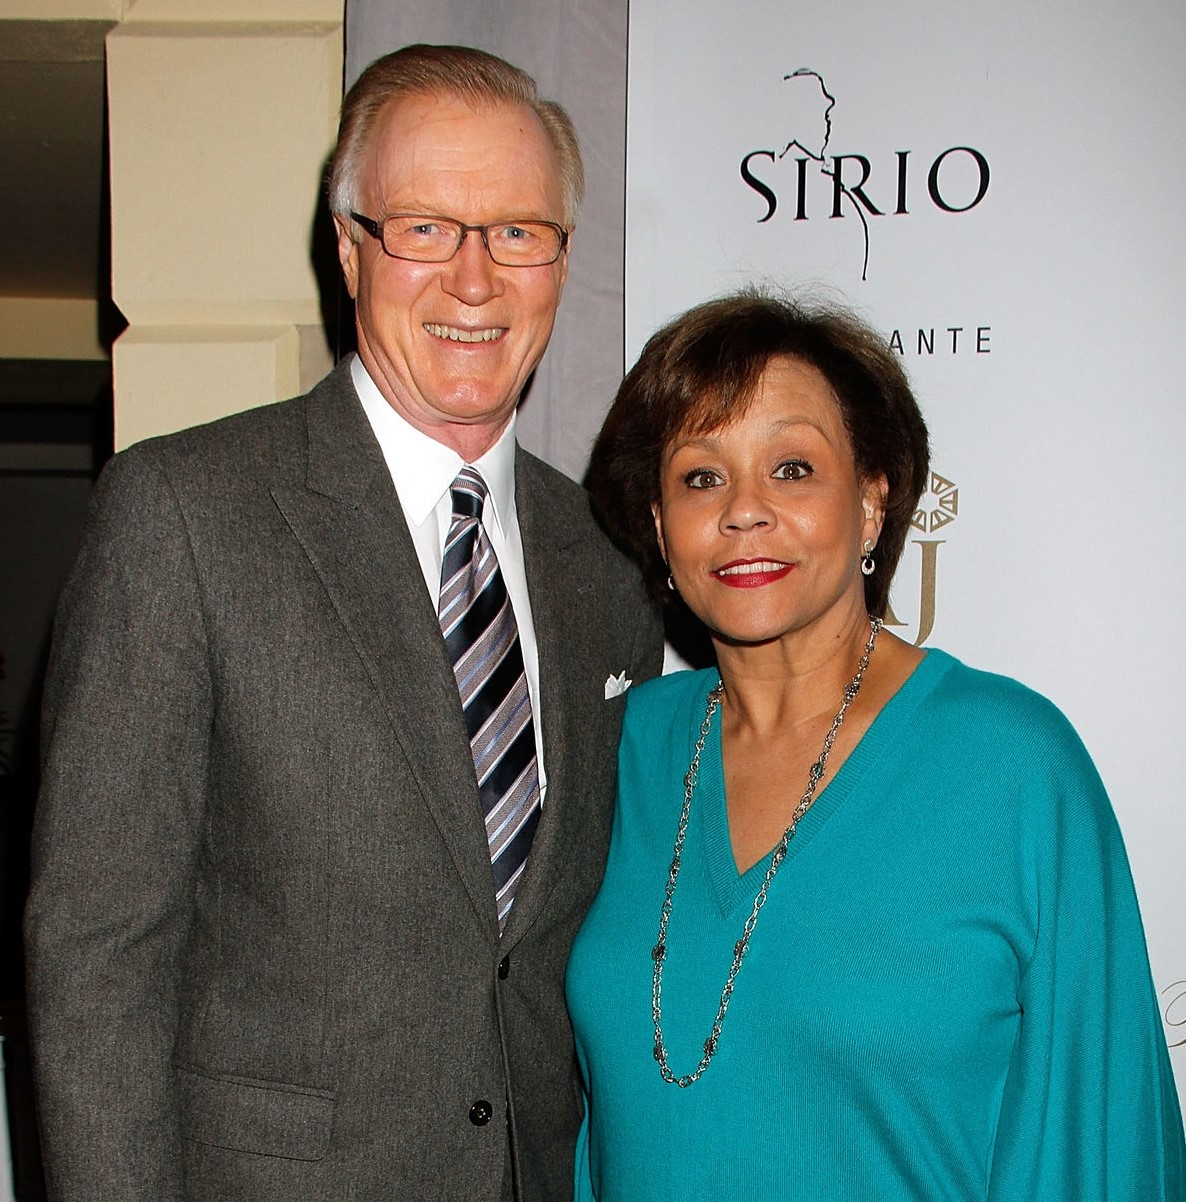 Sue Simmons with her co-anchor, Chuck Scarborough.